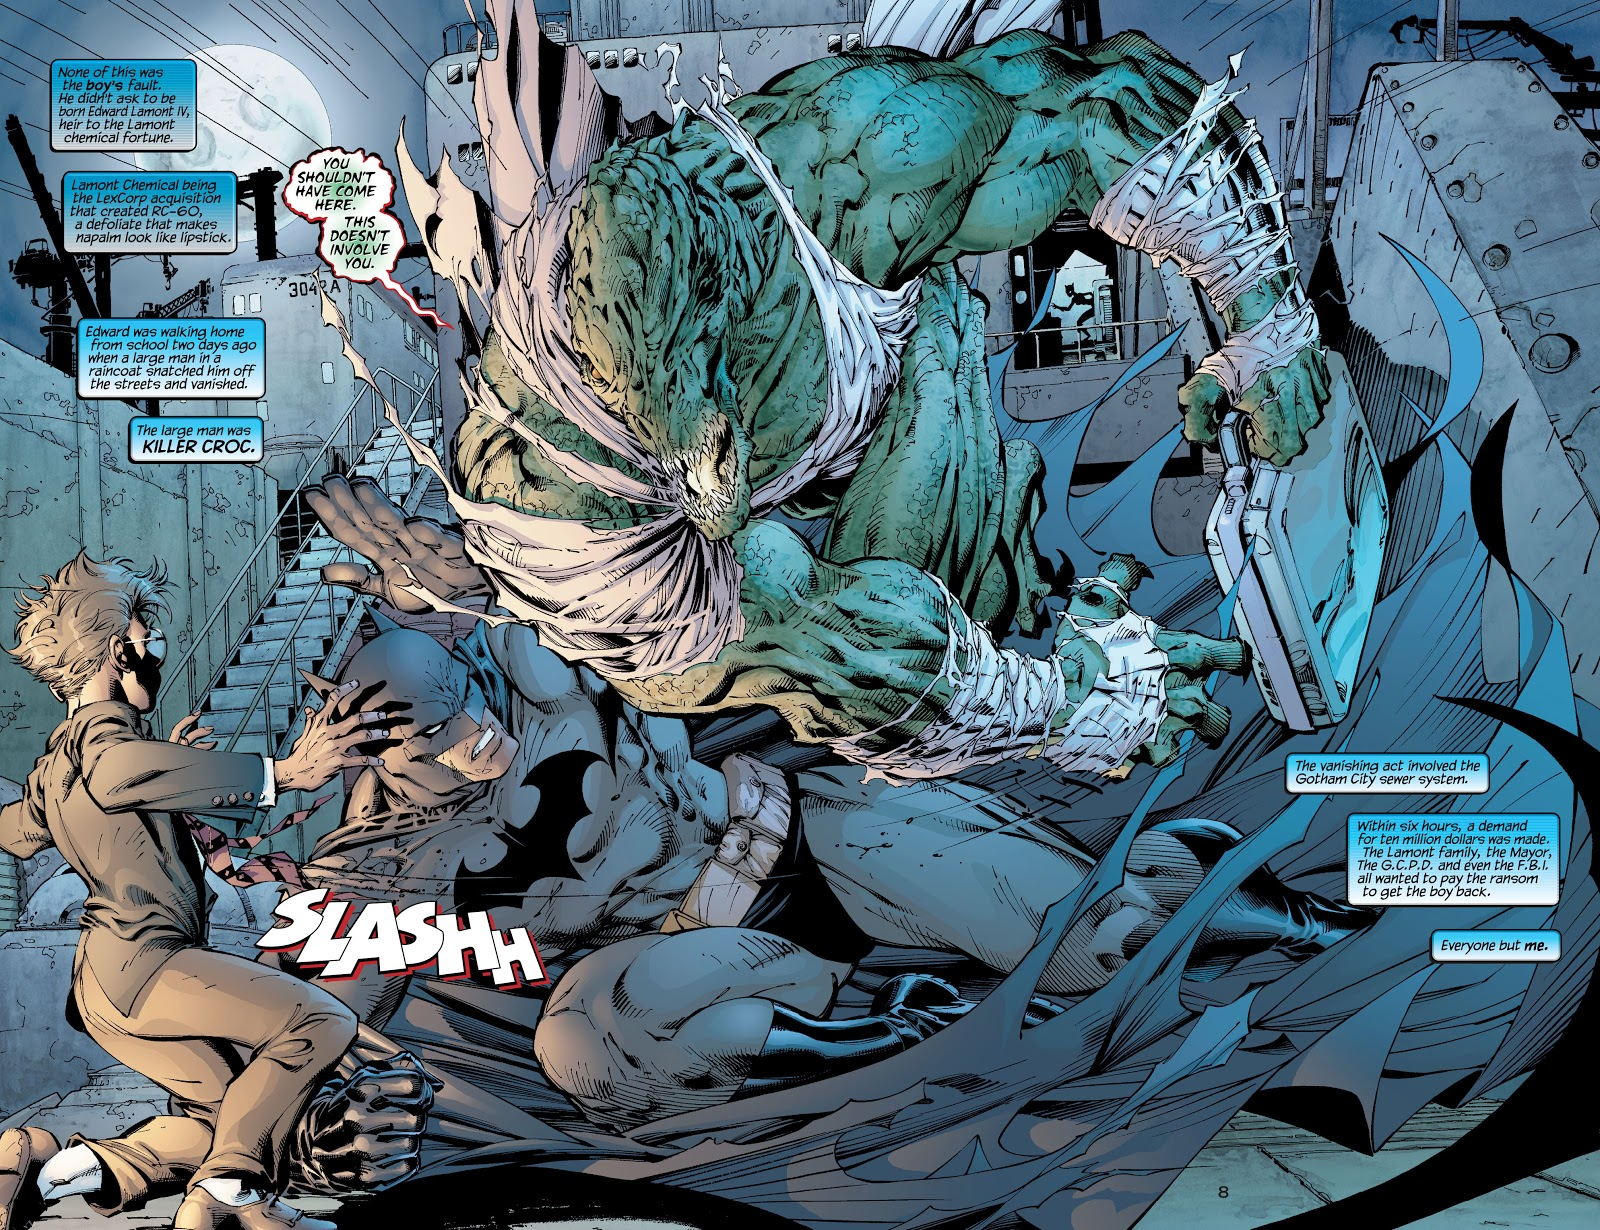 In 'Batman' (2002) #608, Batman has to fight Killer Croc in order to save Edward Lamont IV and recover the ransom money.